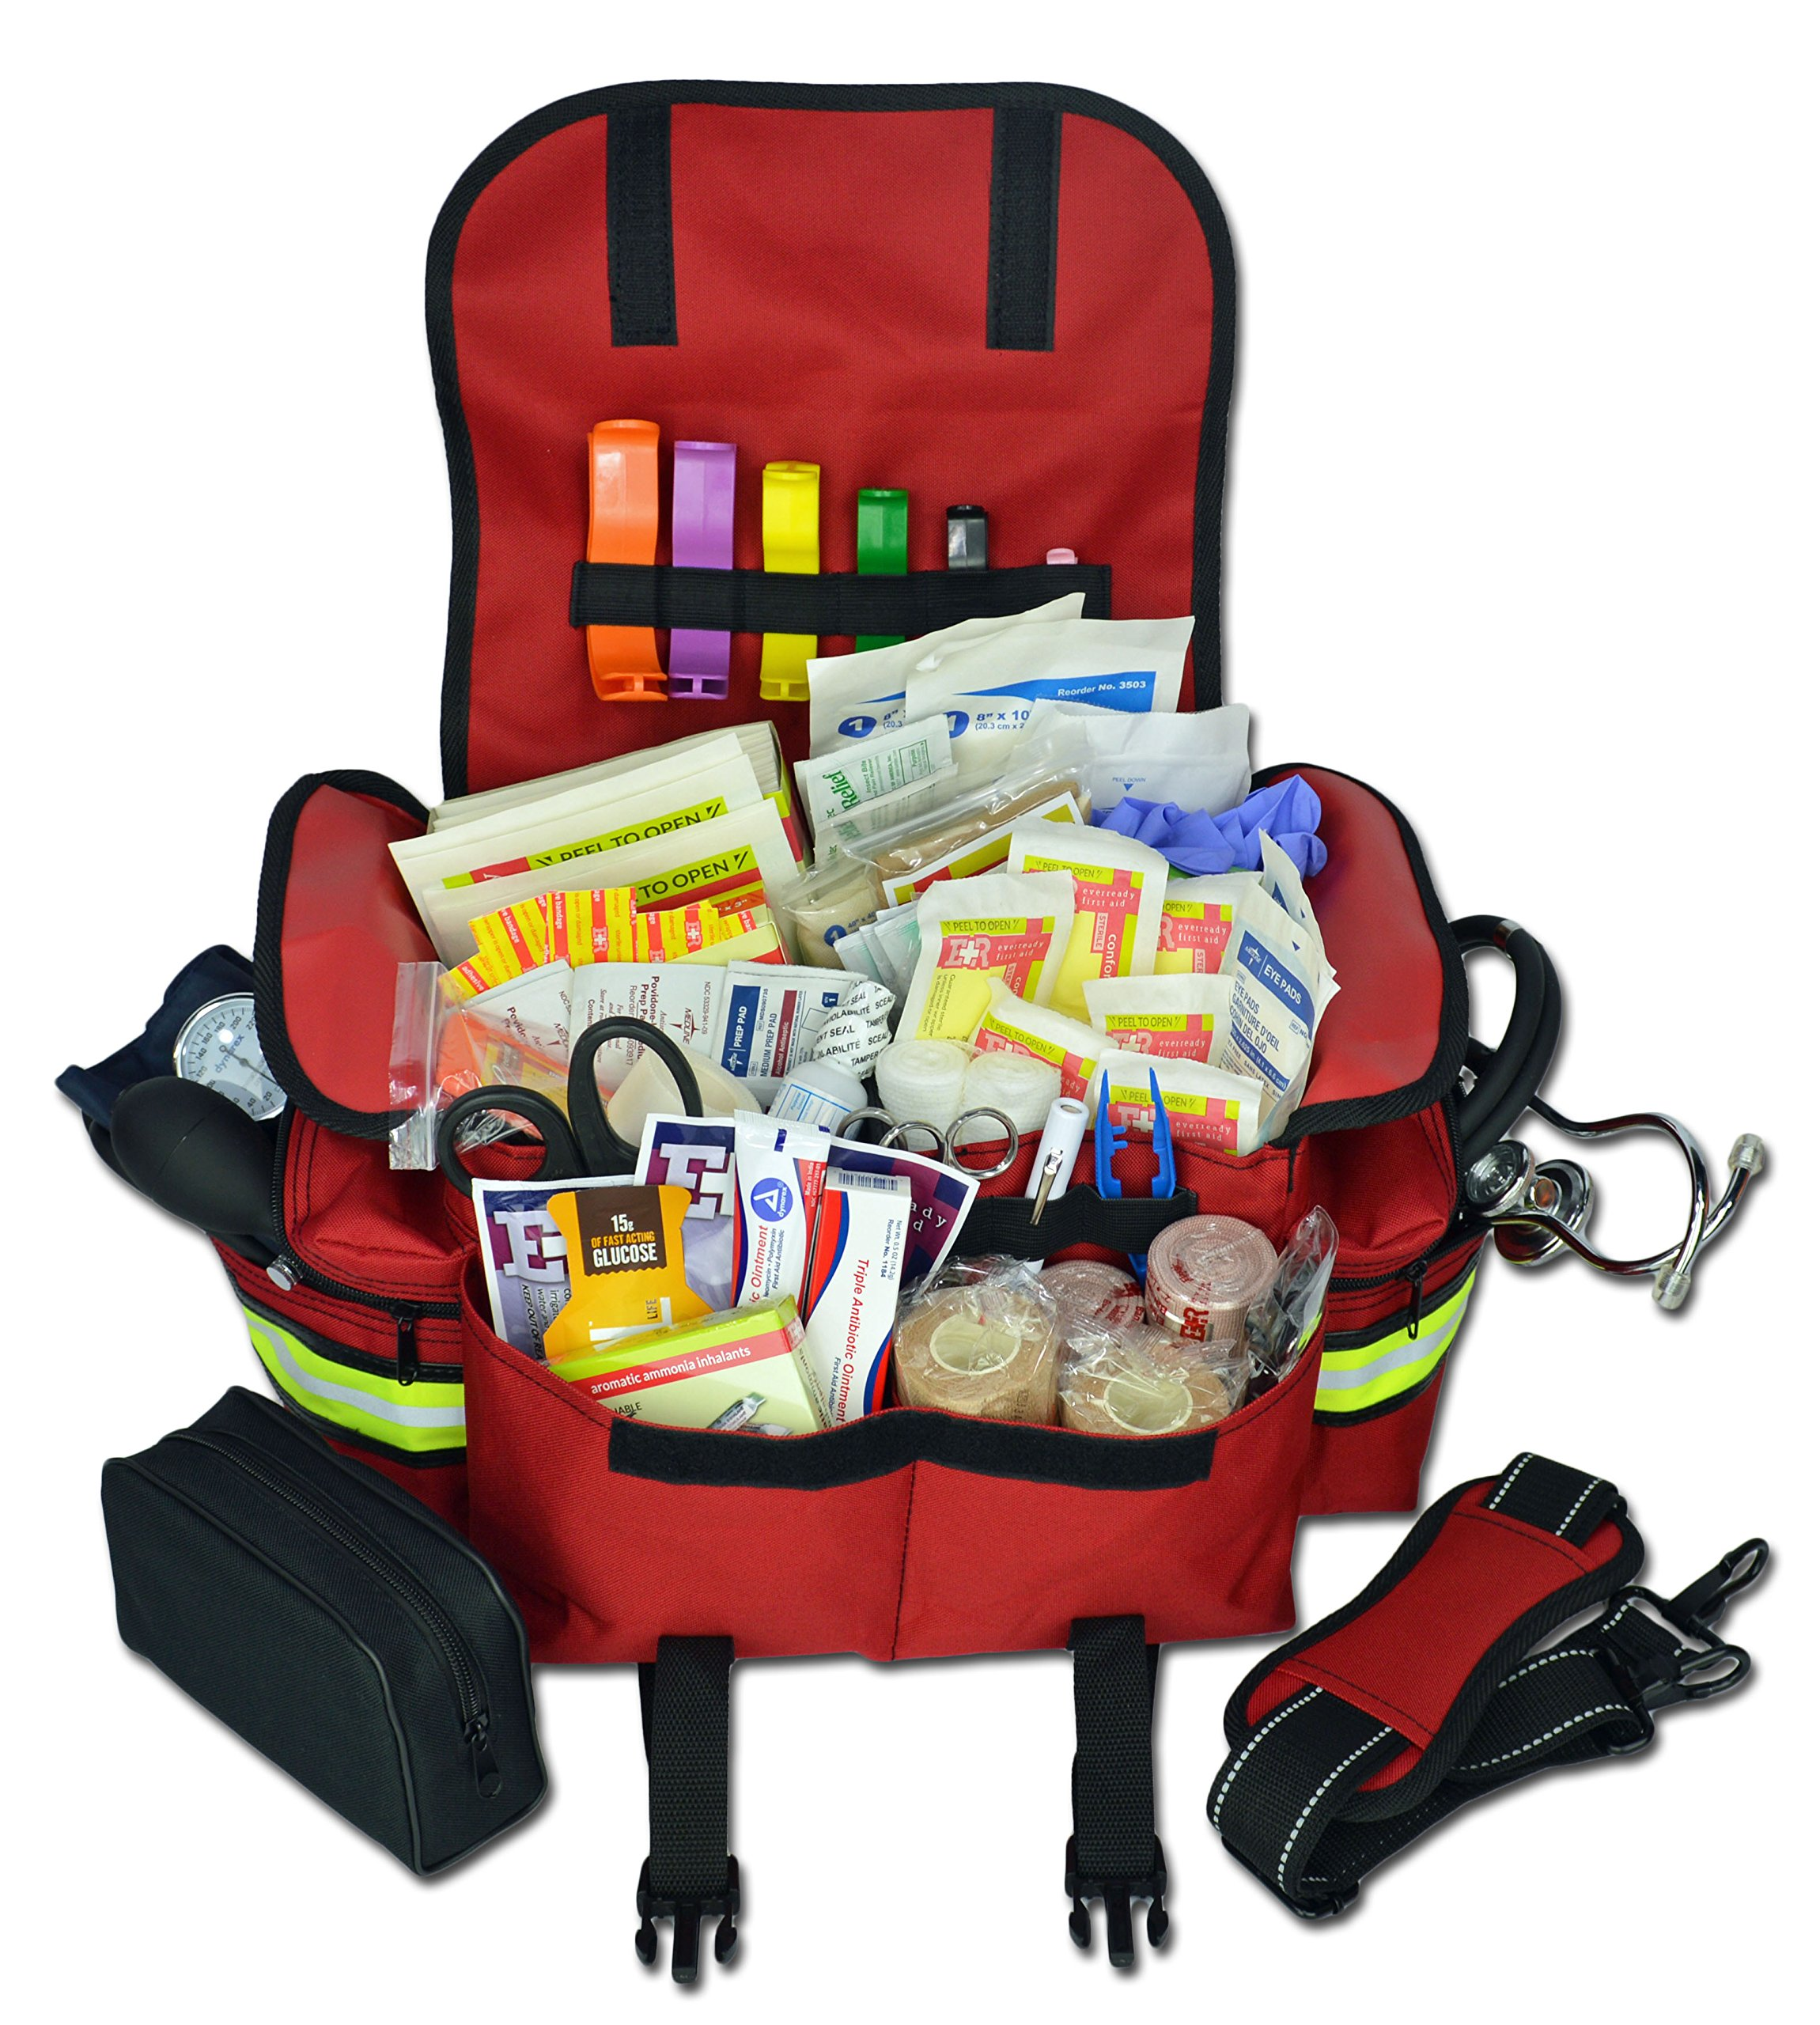 Lightning X Small First Responder EMT EMS Trauma Bag Stocked First Aid Fill Kit B (Red) by Lightning X Products